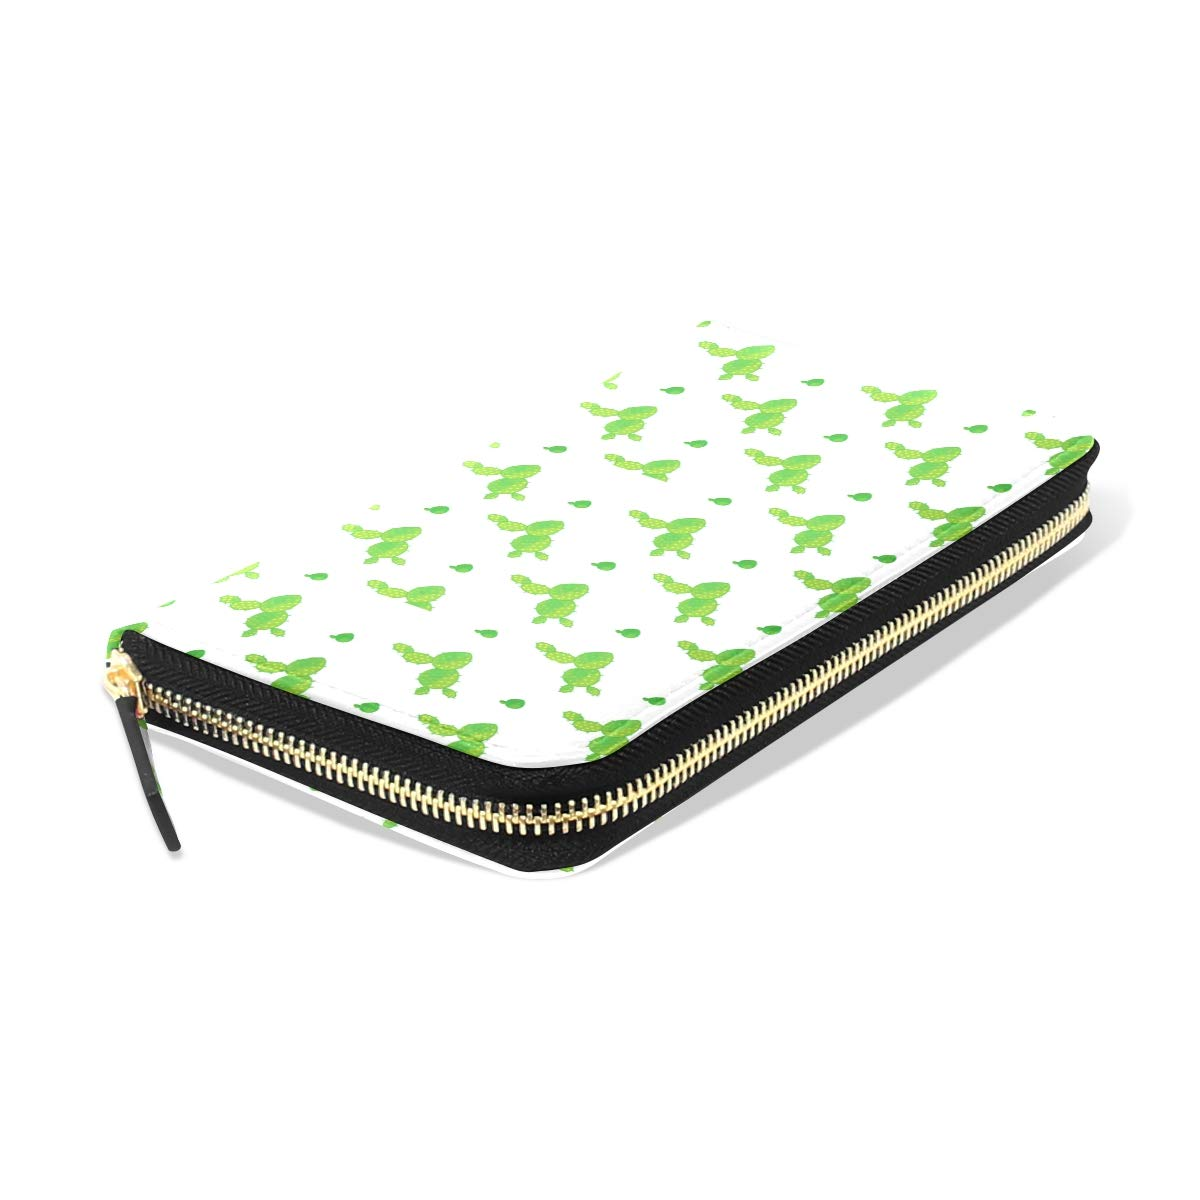 Women LeatherVariety Of Abstract Cacti GreenWallet Large Capacity Zipper Travel Wristlet Bags Clutch Cellphone Bag